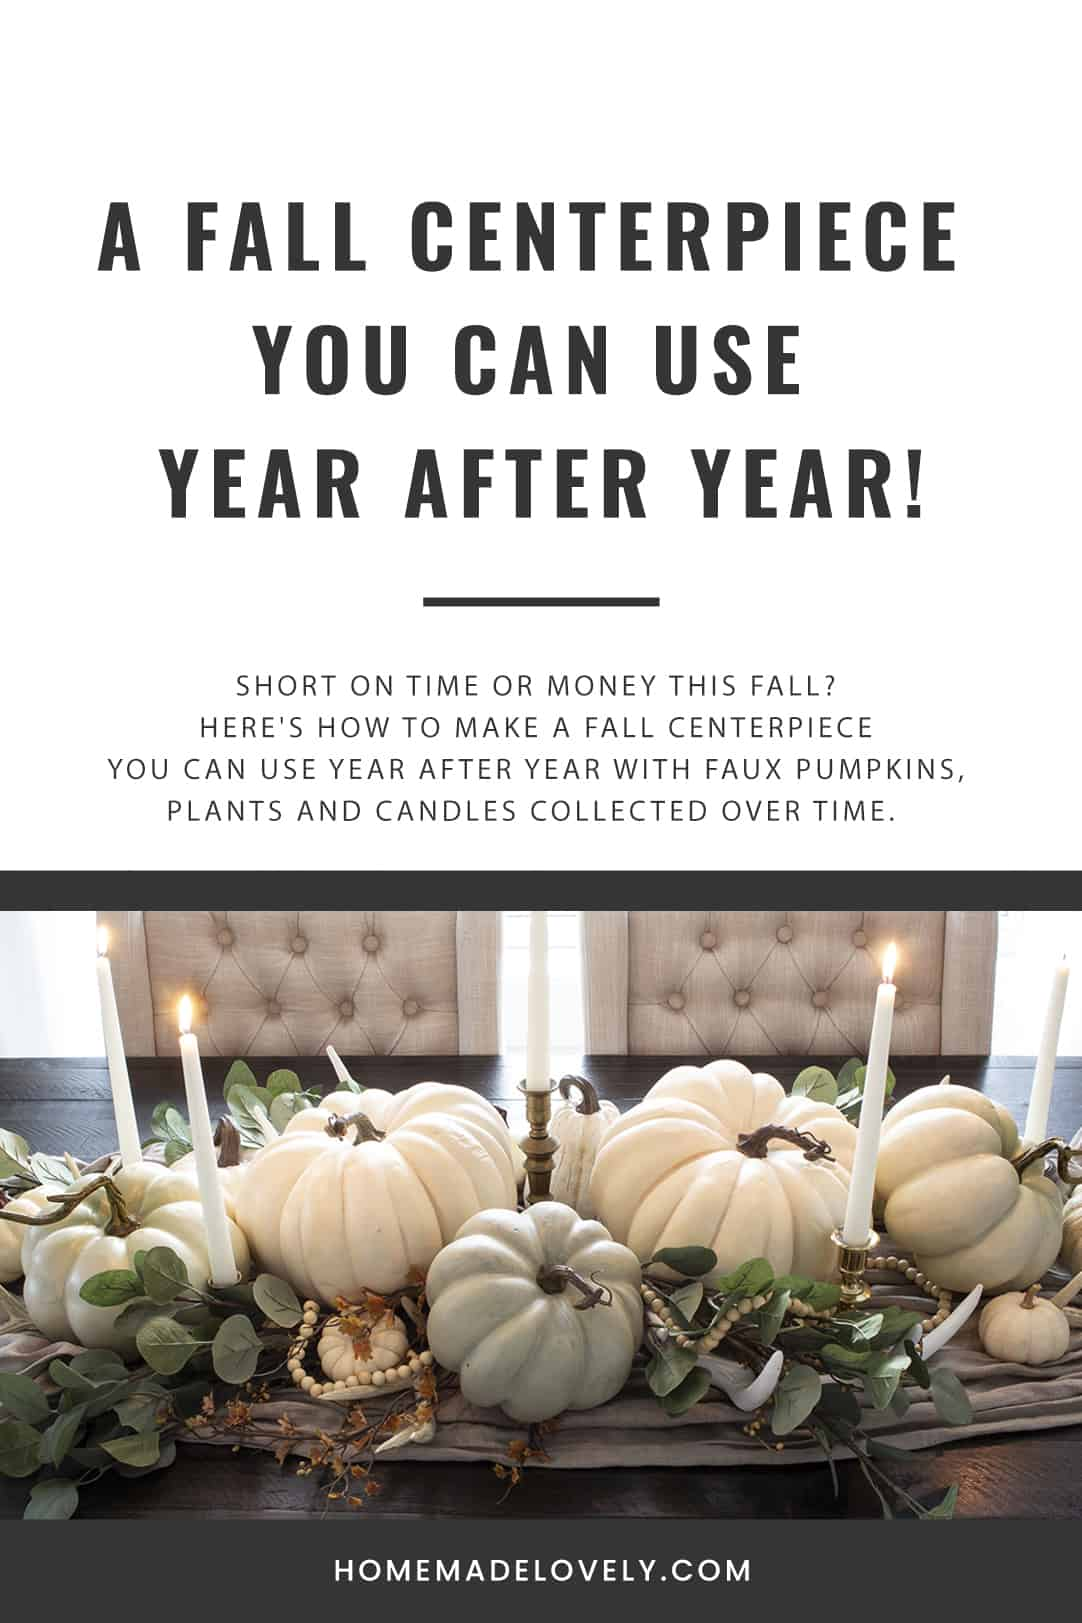 Short on time or money this fall? Here's how to make a fall centerpiece you can use year after year with faux pumpkins, plants and candles collected over time.